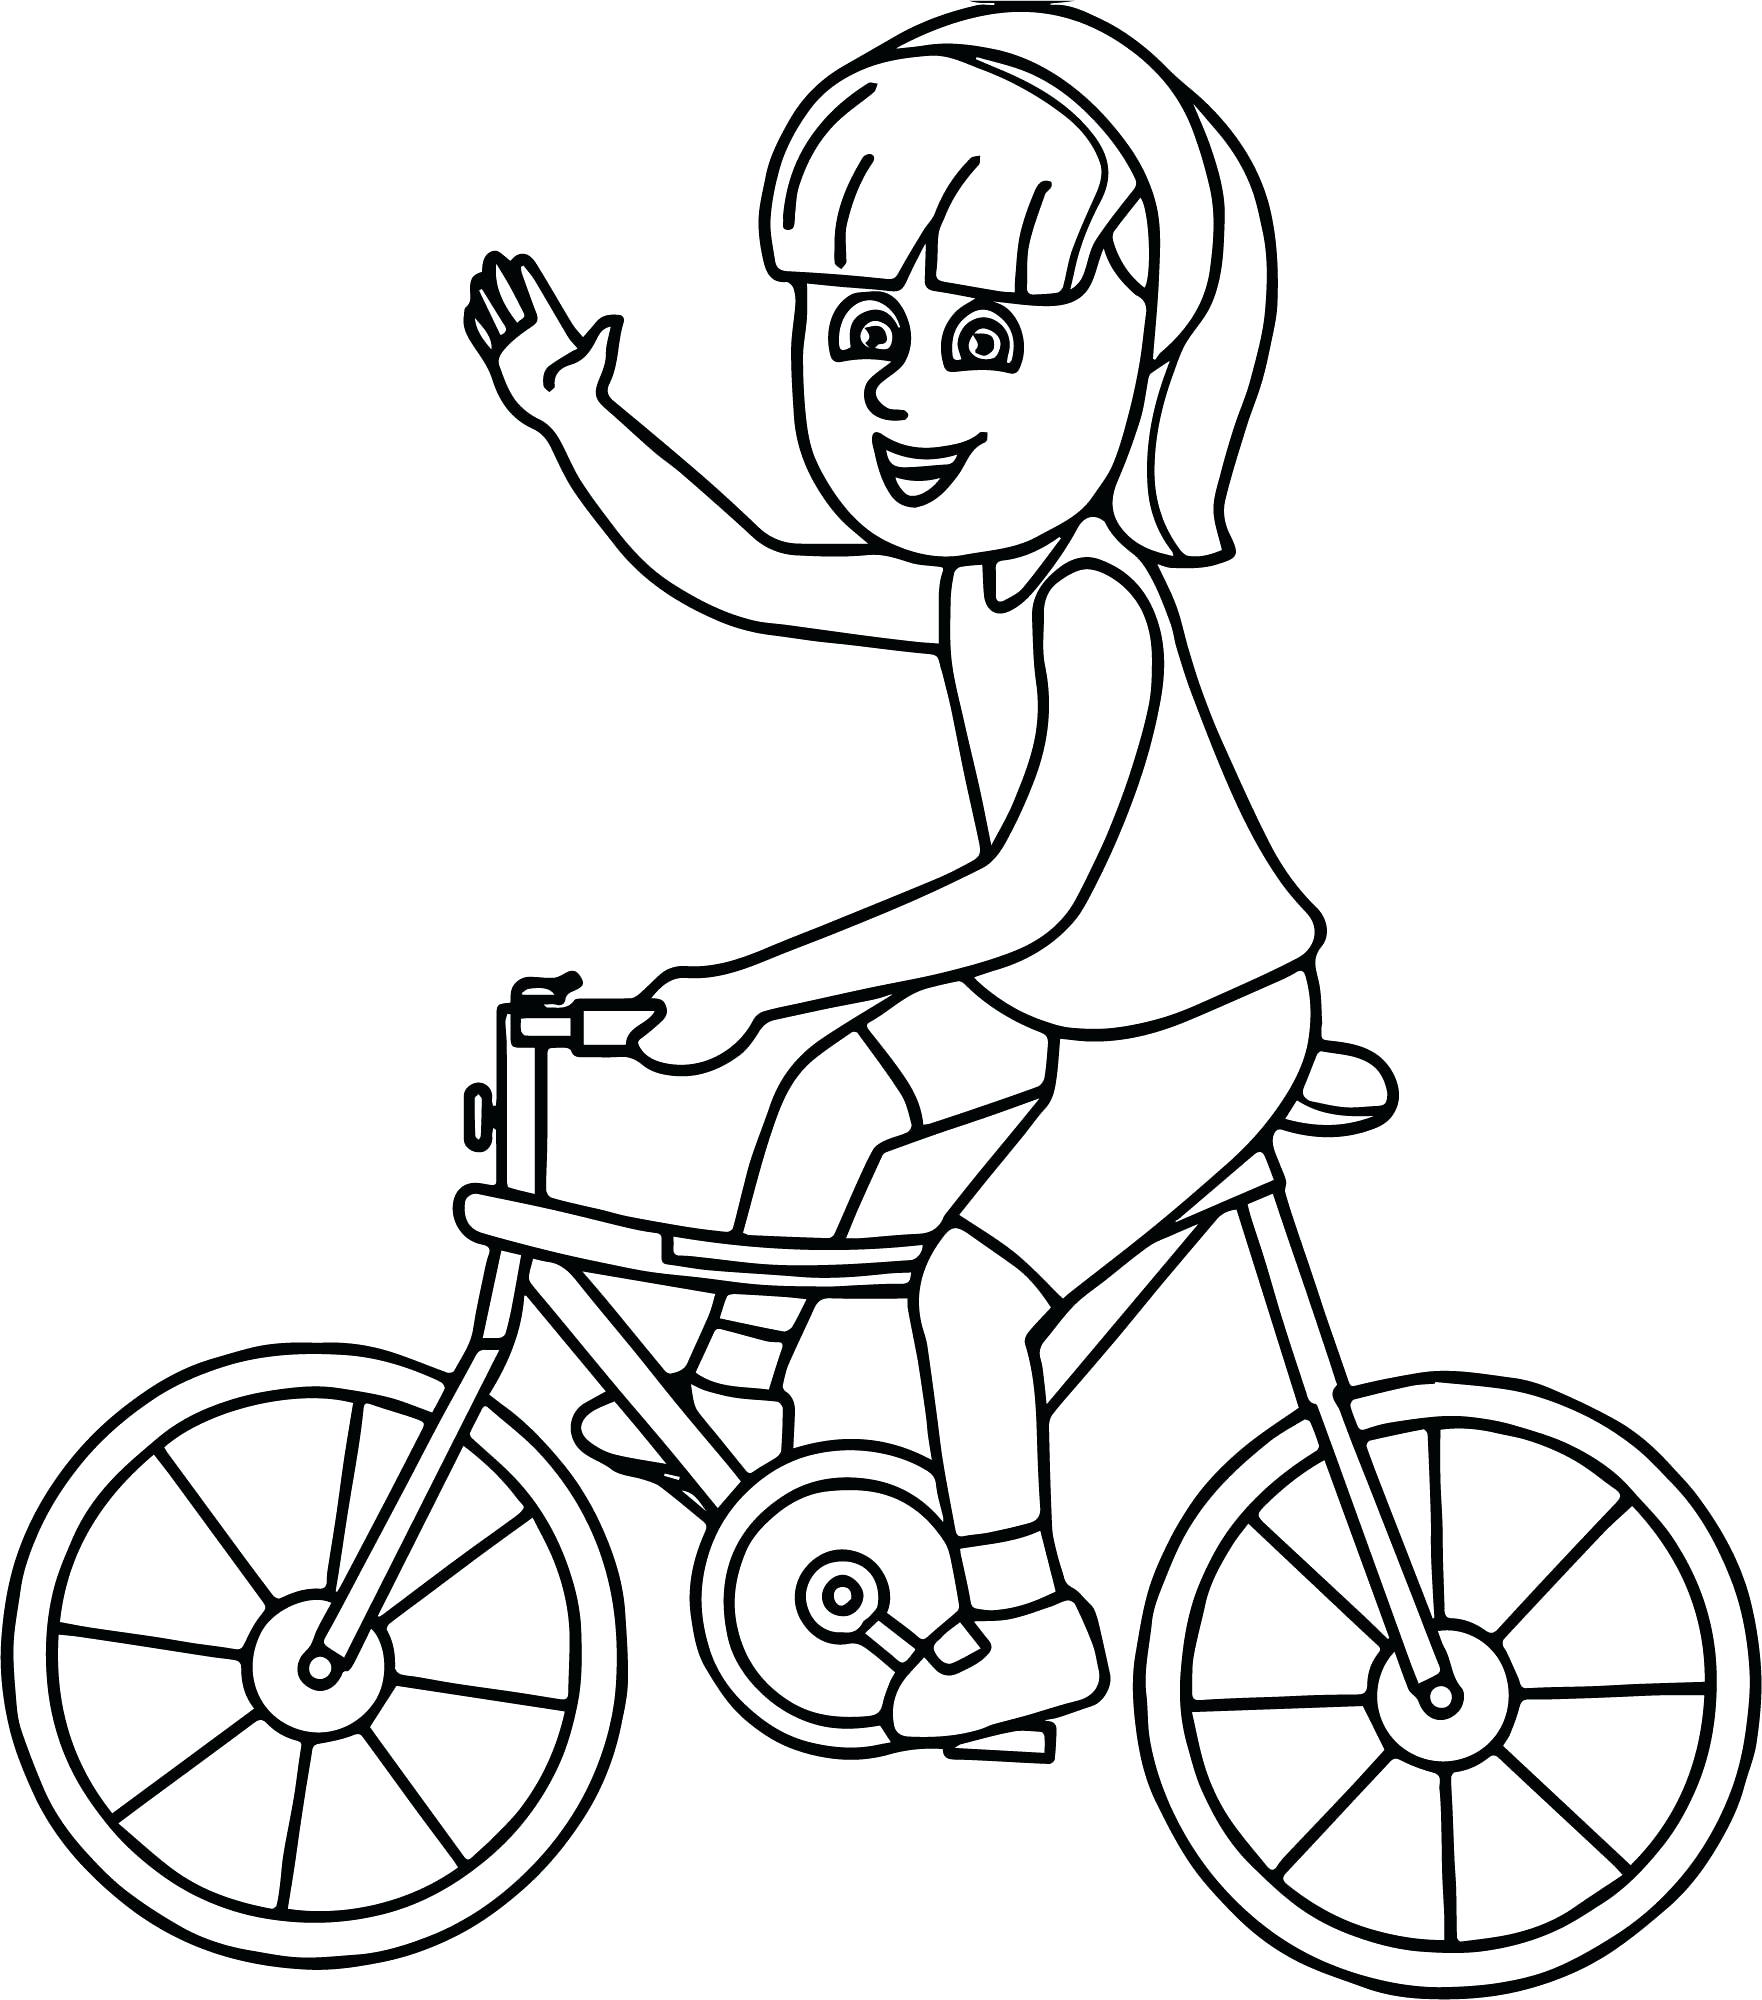 1762x2000 Dirt Bike Coloring Pages Riding Girl On Bicycle Page Helmet